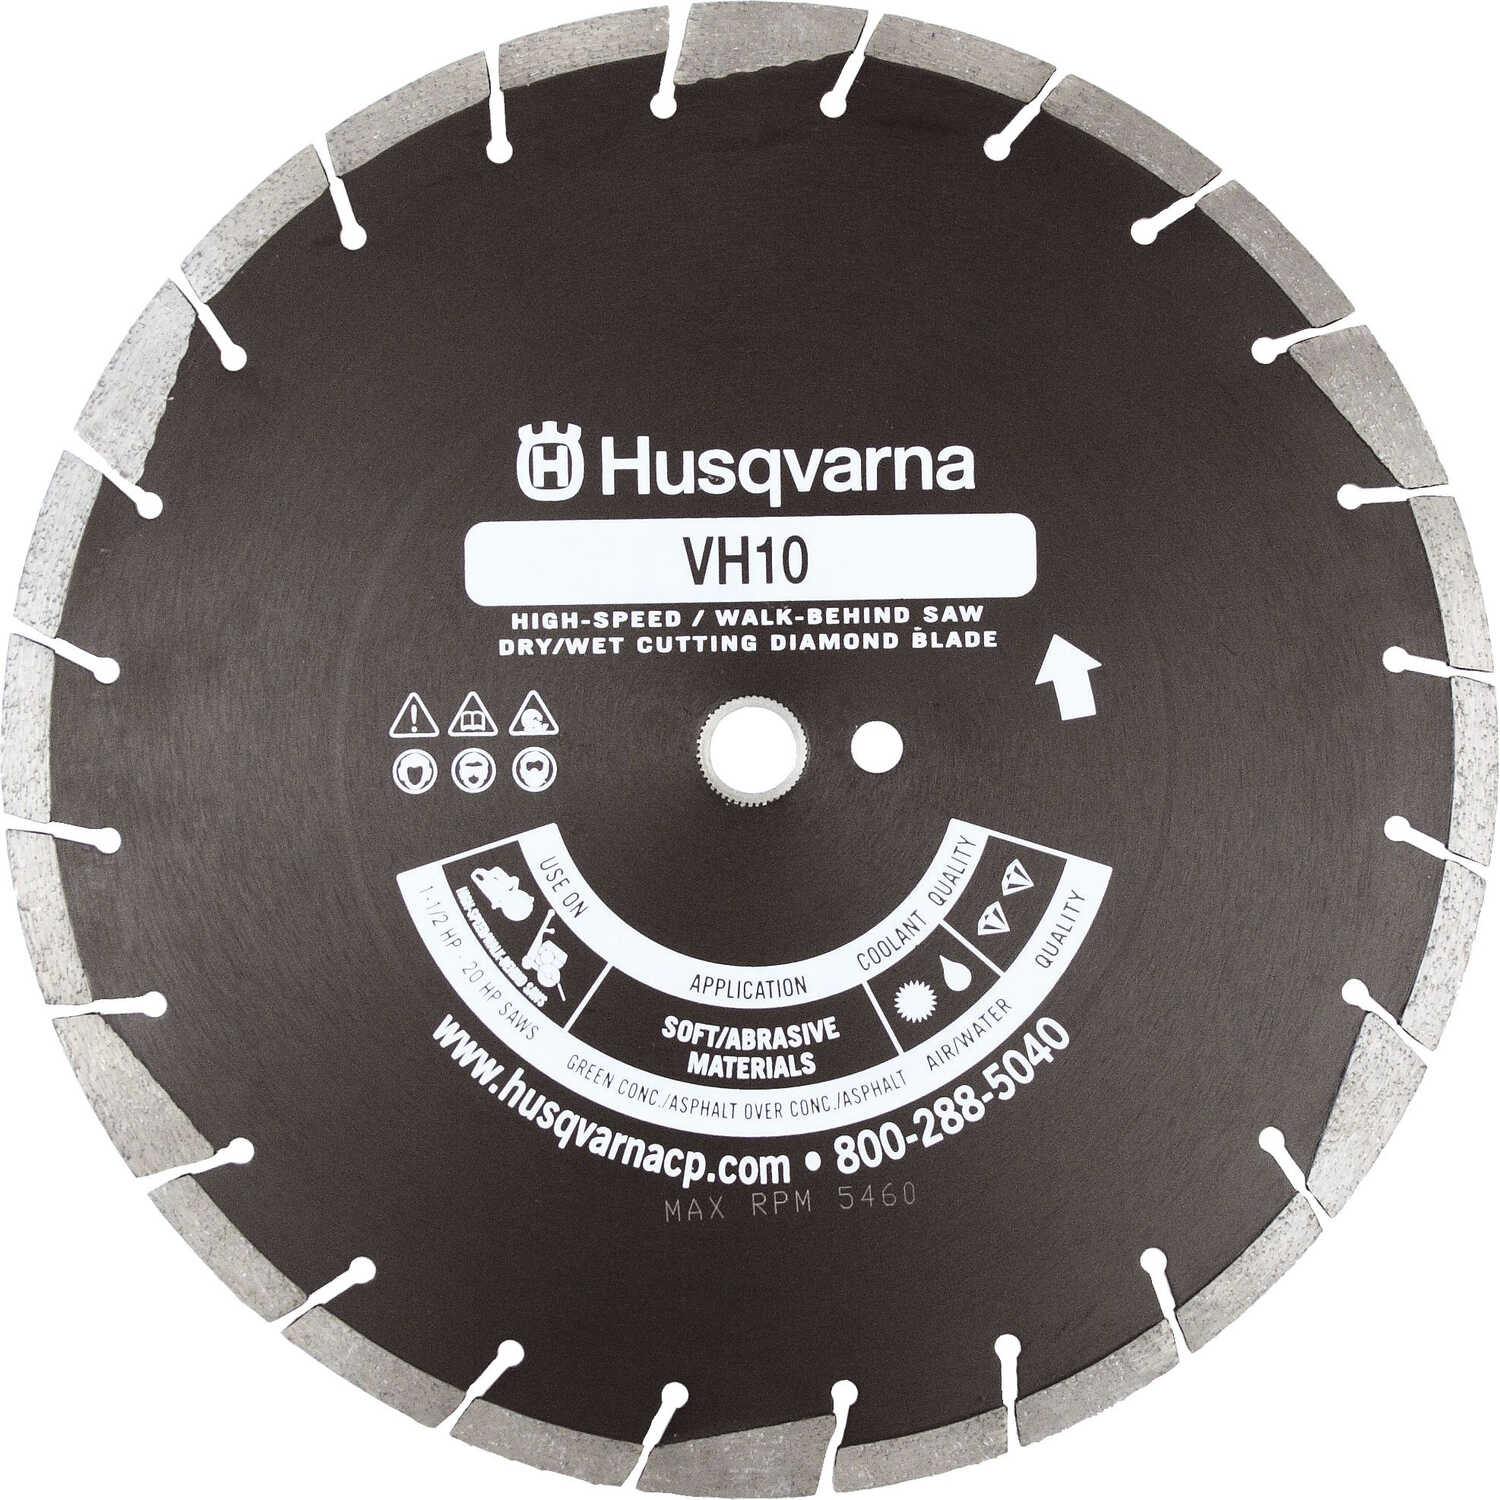 Husqvarna  14  Diamond  VH10  Segmented Rim Saw Blade  1/8 in. thick  1 in.  24 teeth 1 pk